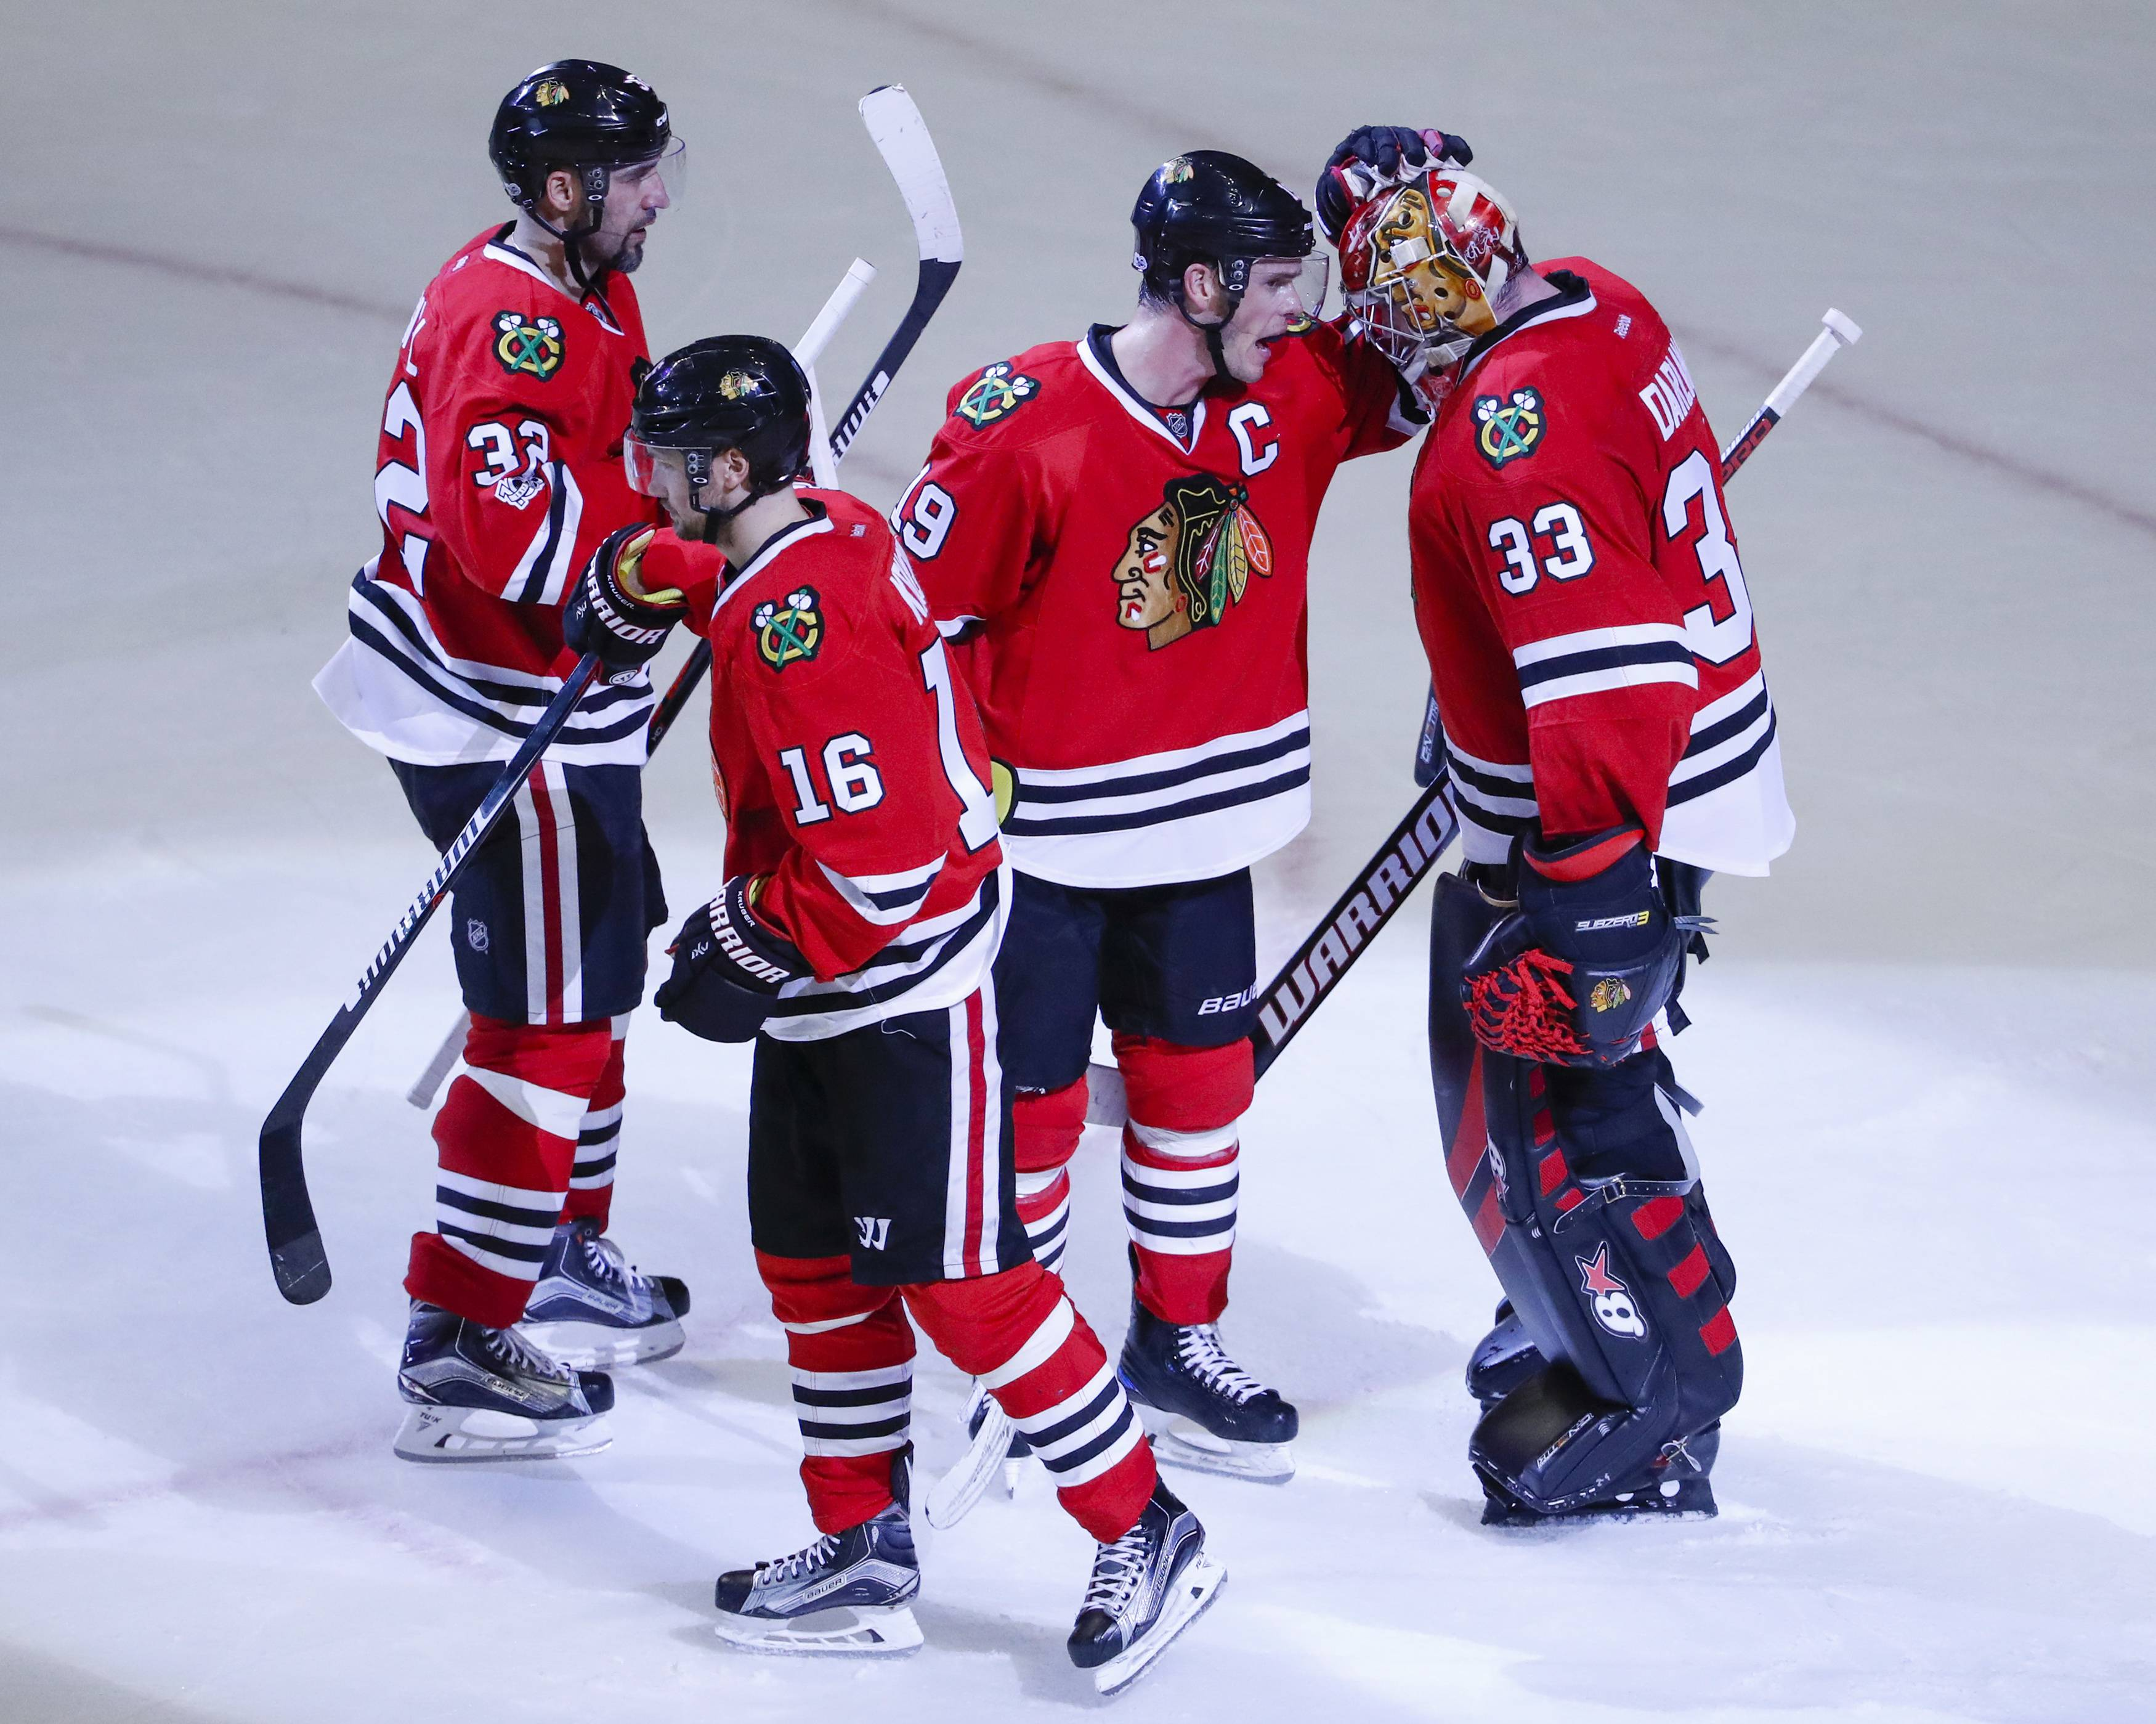 Chicago Blackhawks center Jonathan Toews (19) celebrates with goalie Scott Darling (33) their 4-2 win against the St. Louis Blues at the end of an NHL hockey game Sunday, Feb. 26, 2017, in Chicago. (AP Photo/Kamil Krzaczynski)